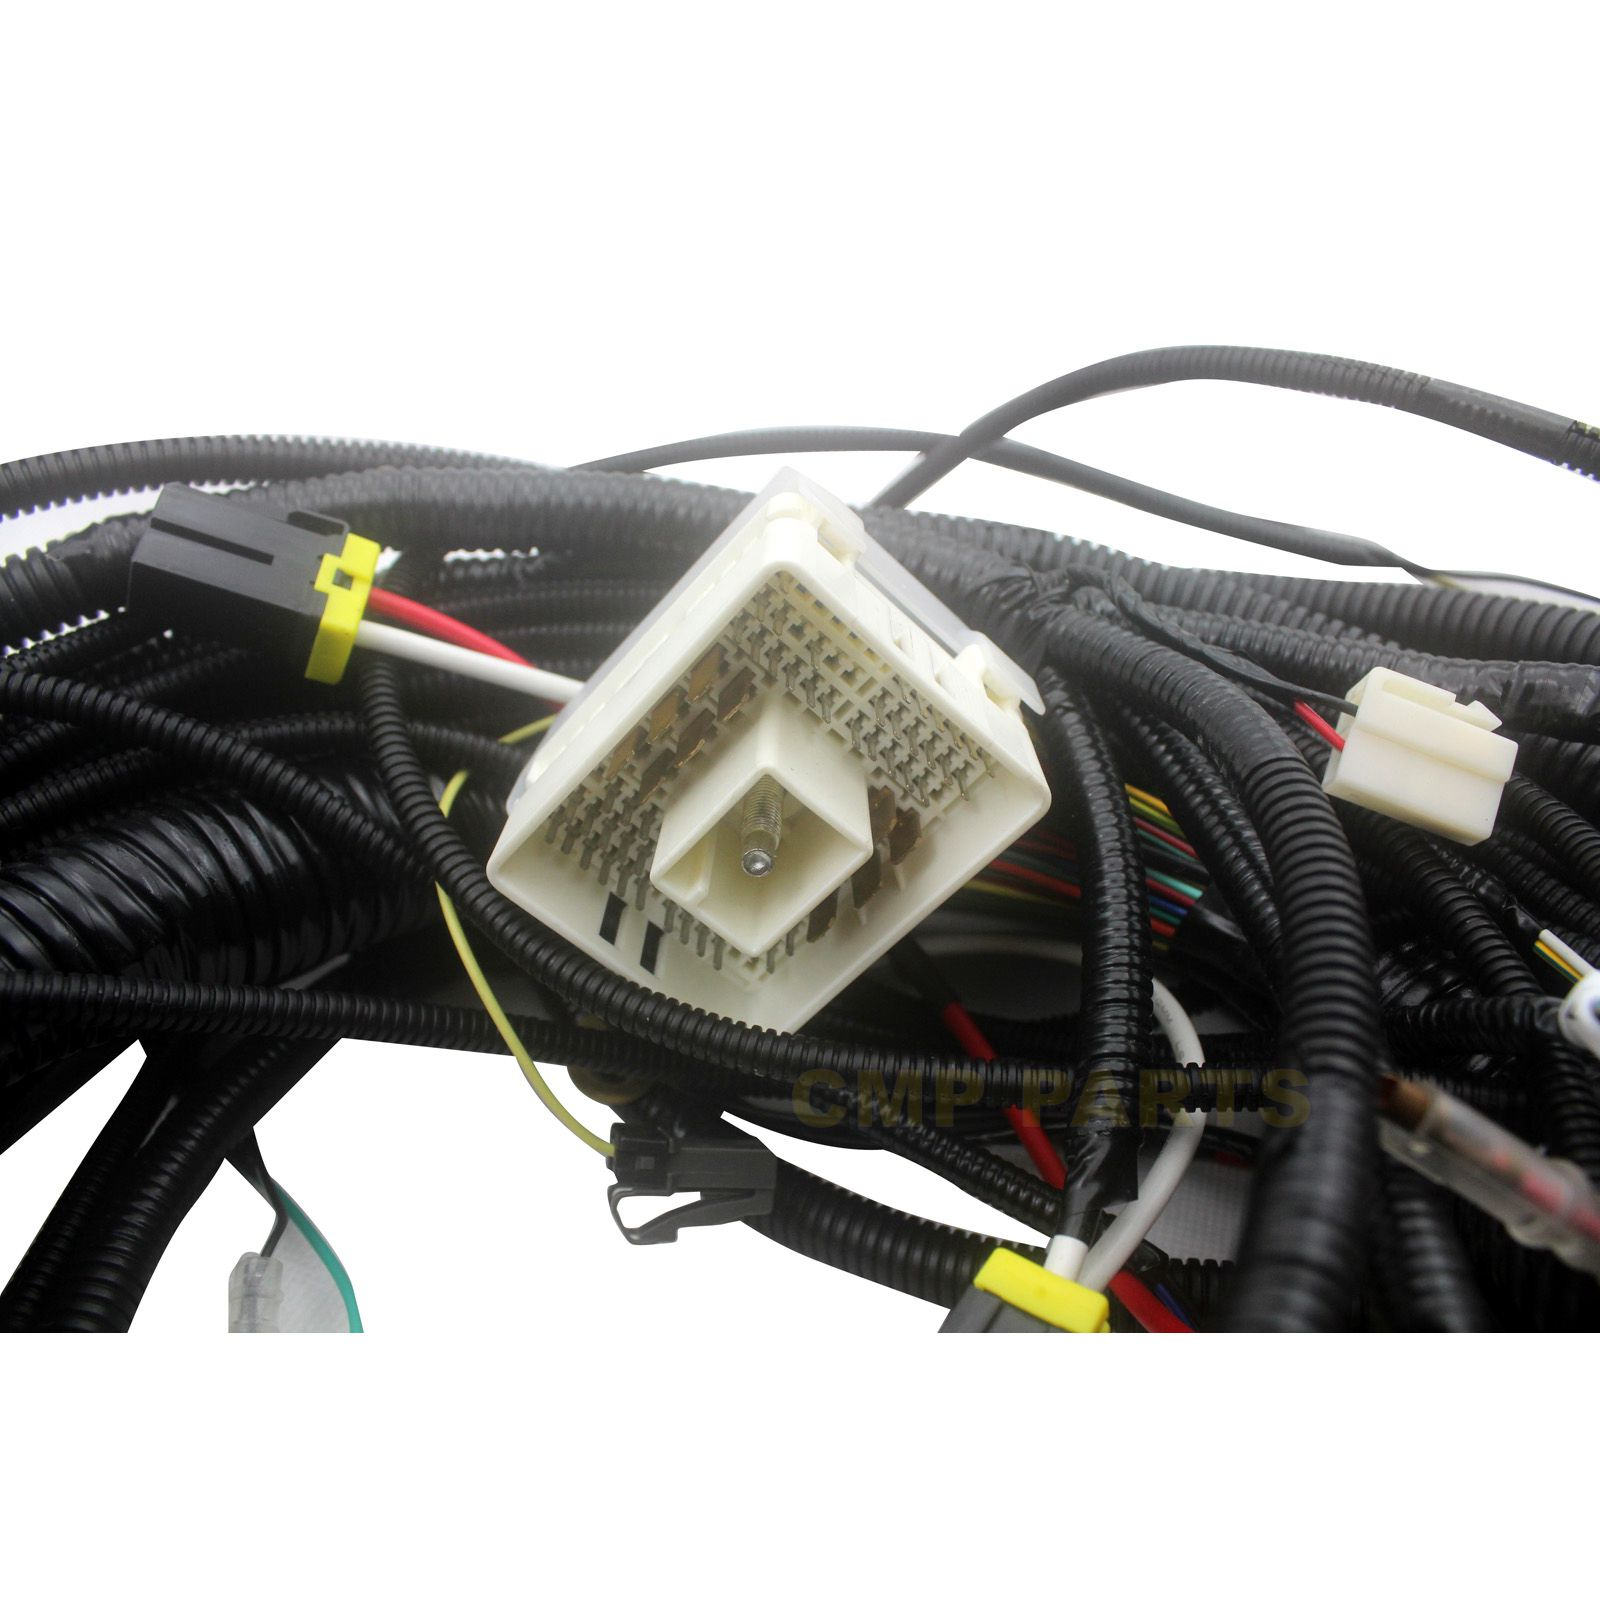 outer external wiring harness for hitachi zx zxlc productpicture0 productpicture1 productpicture2 productpicture3 productpicture4 productpicture5